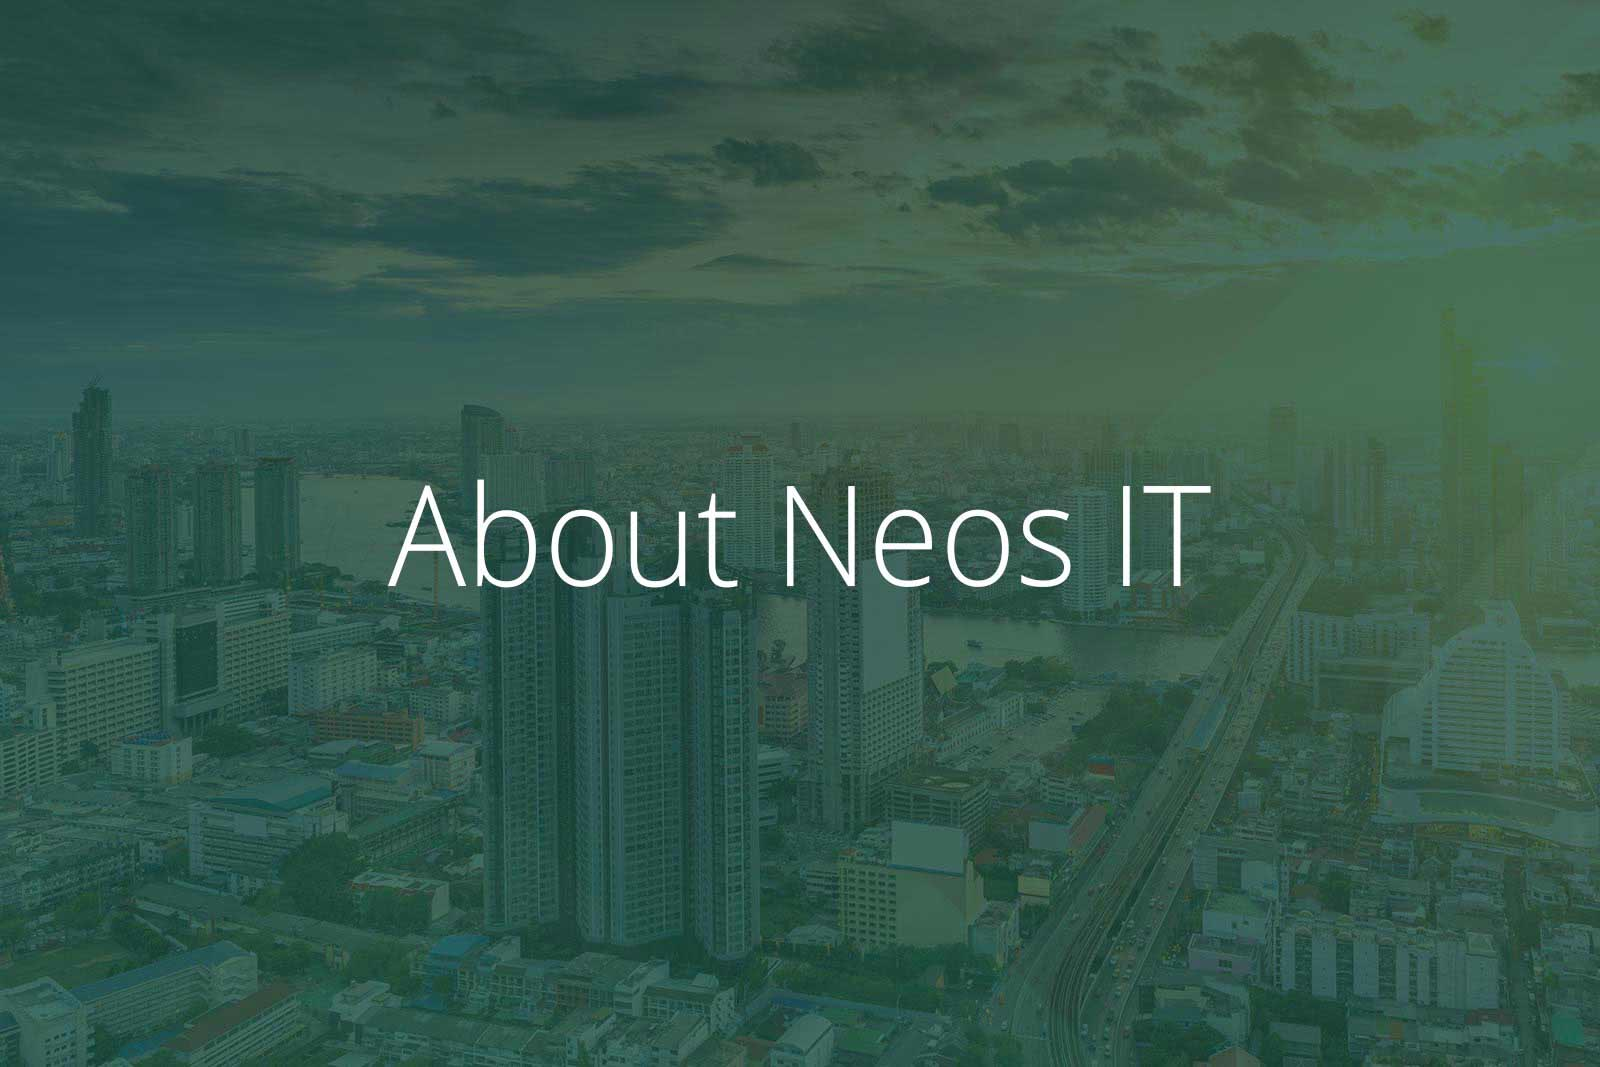 About Neos IT Services, Image Bangkok